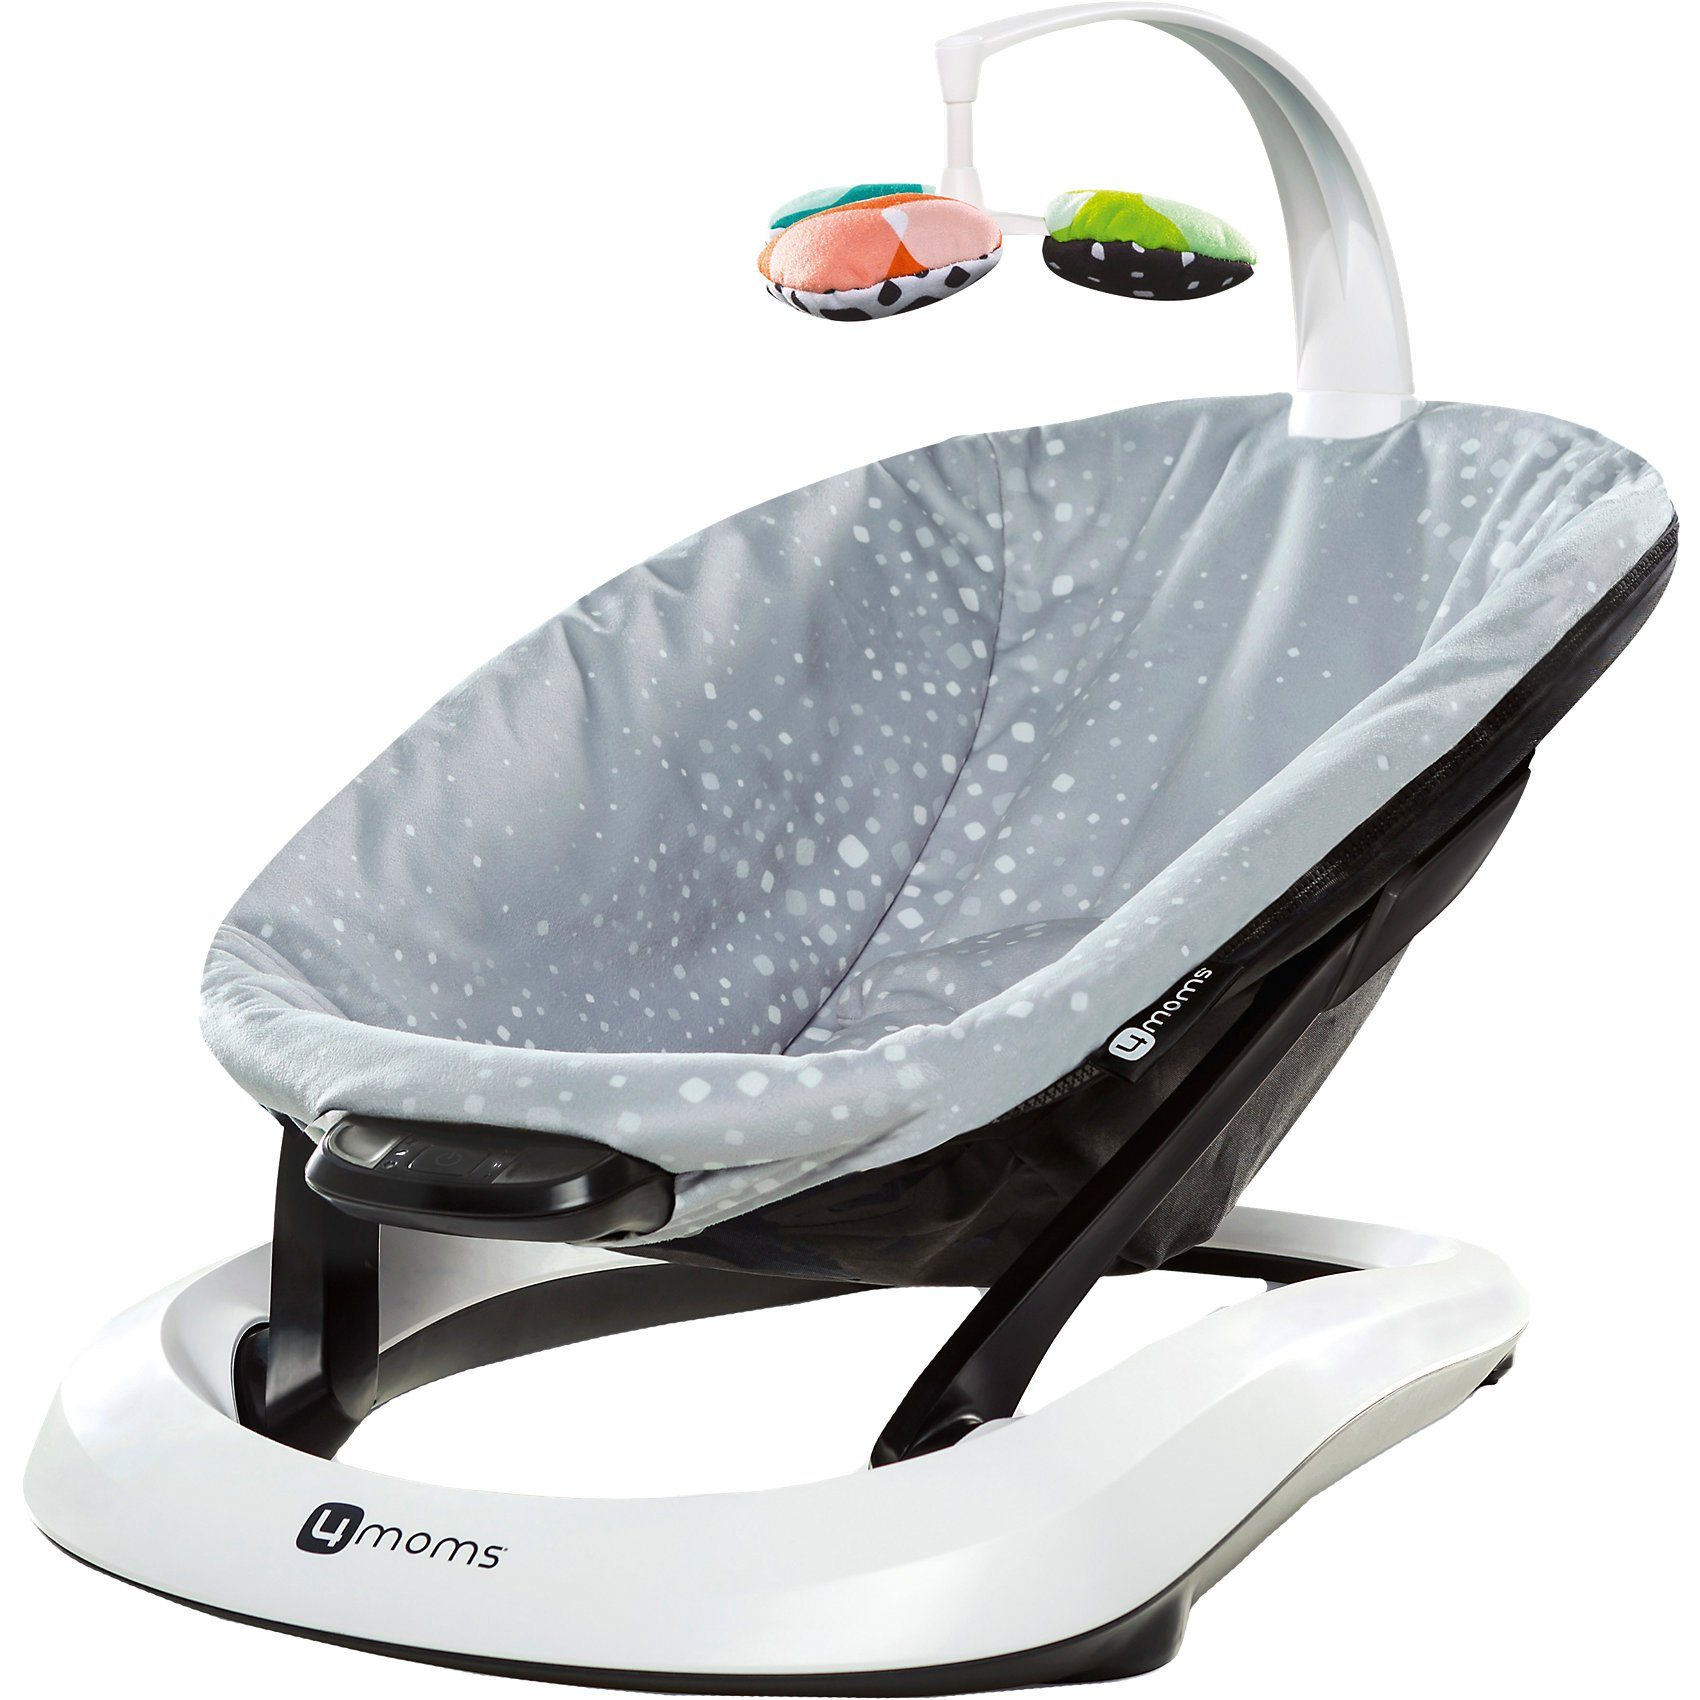 4moms Babyschaukel bounceRoo, Silver Plush